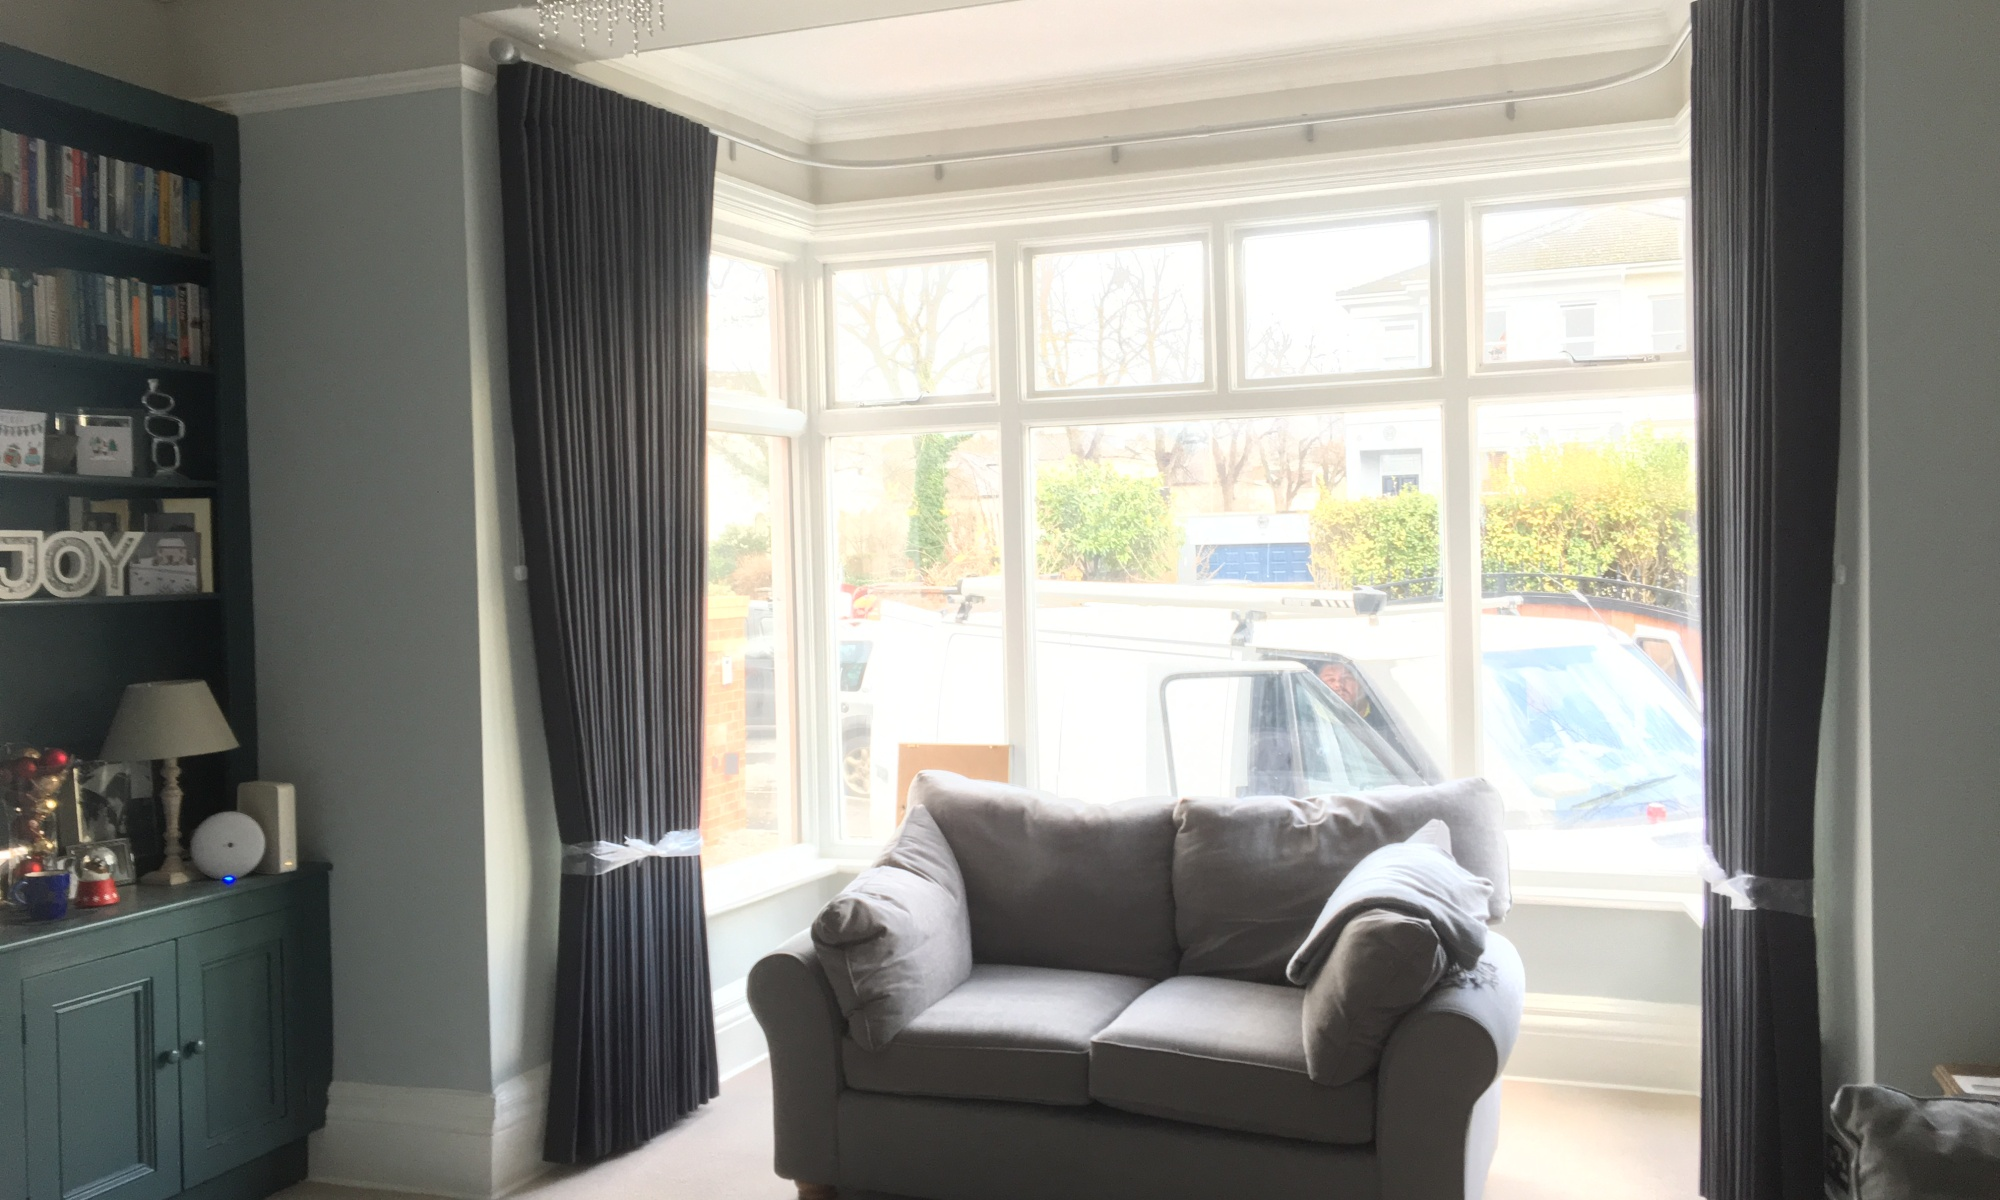 Cartridge pleat curtains on Silent Gliss Metropole in bay window - Cheltenham Town House